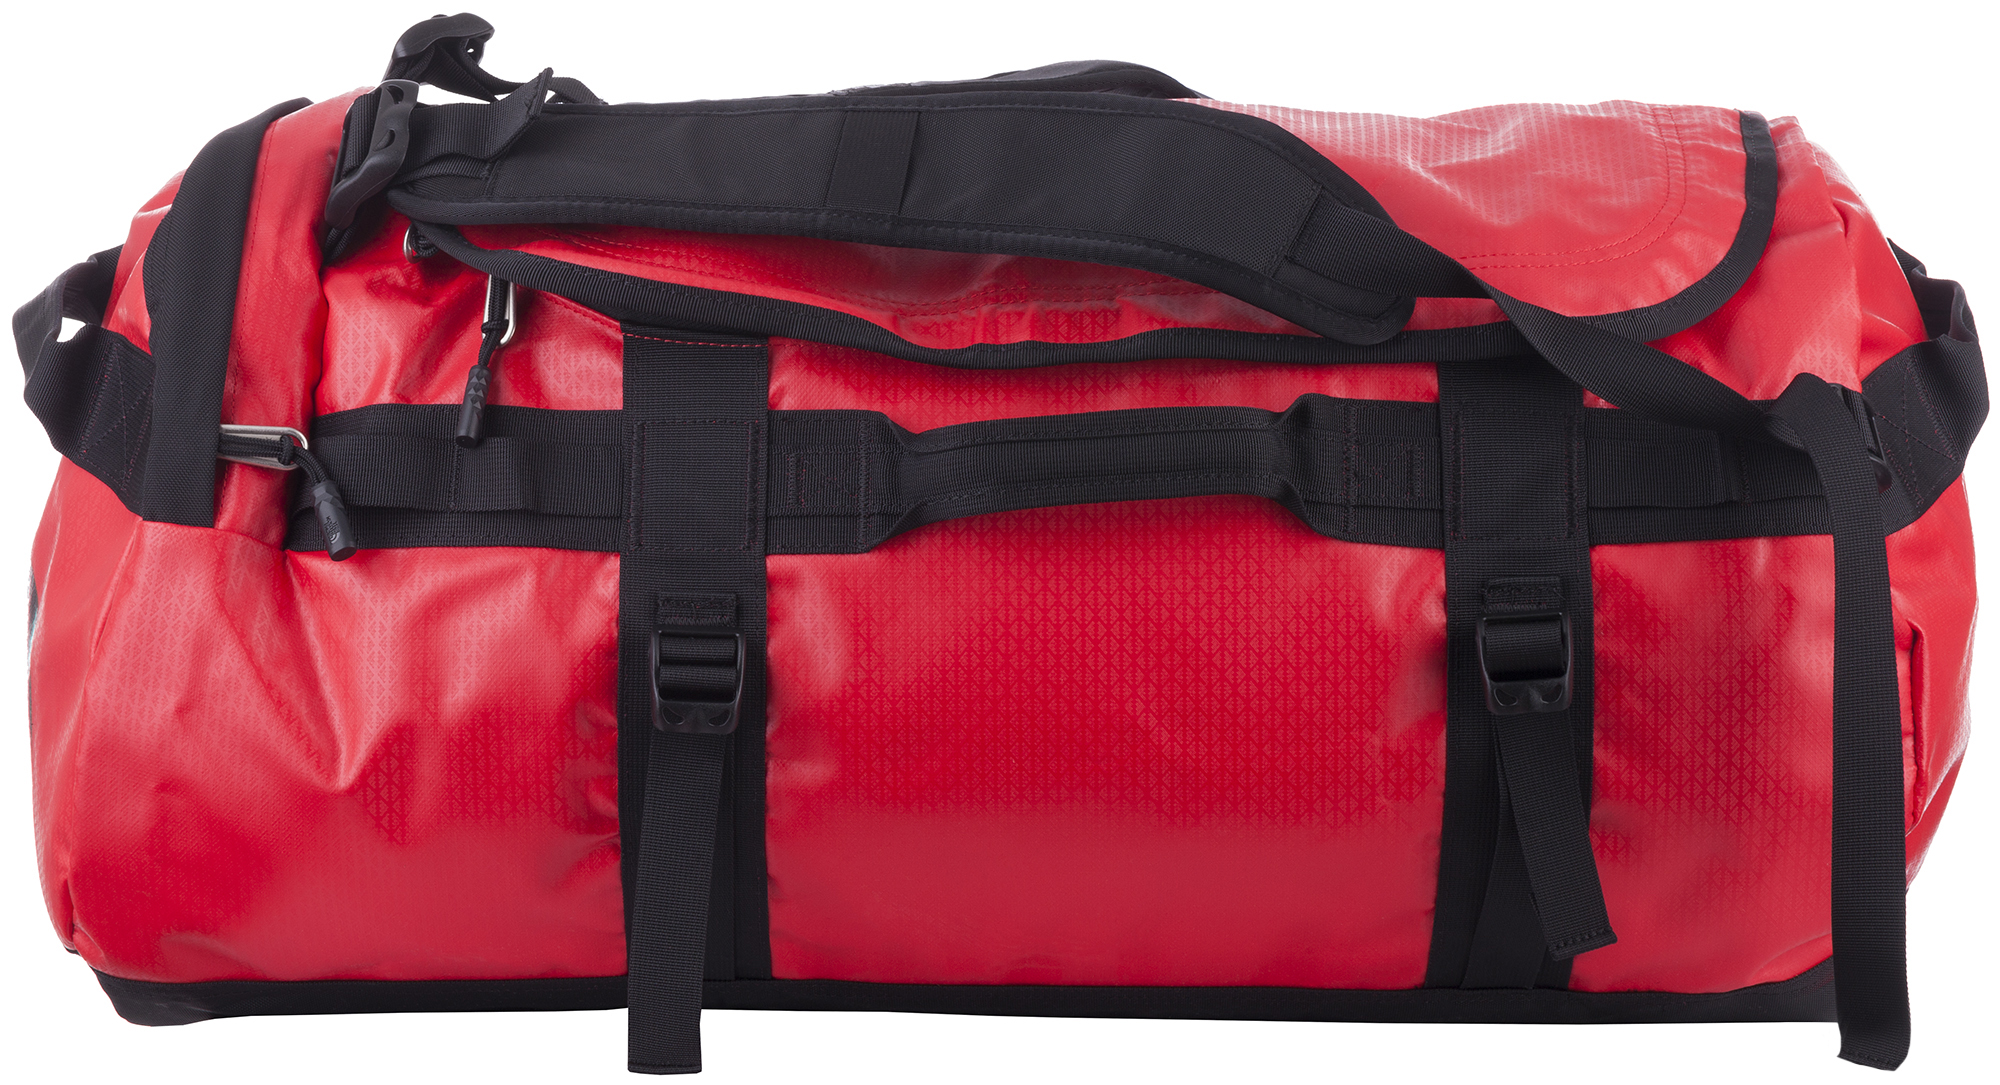 The North Face Рюкзак The North Face Base Camp Duffel the north face олимпийка